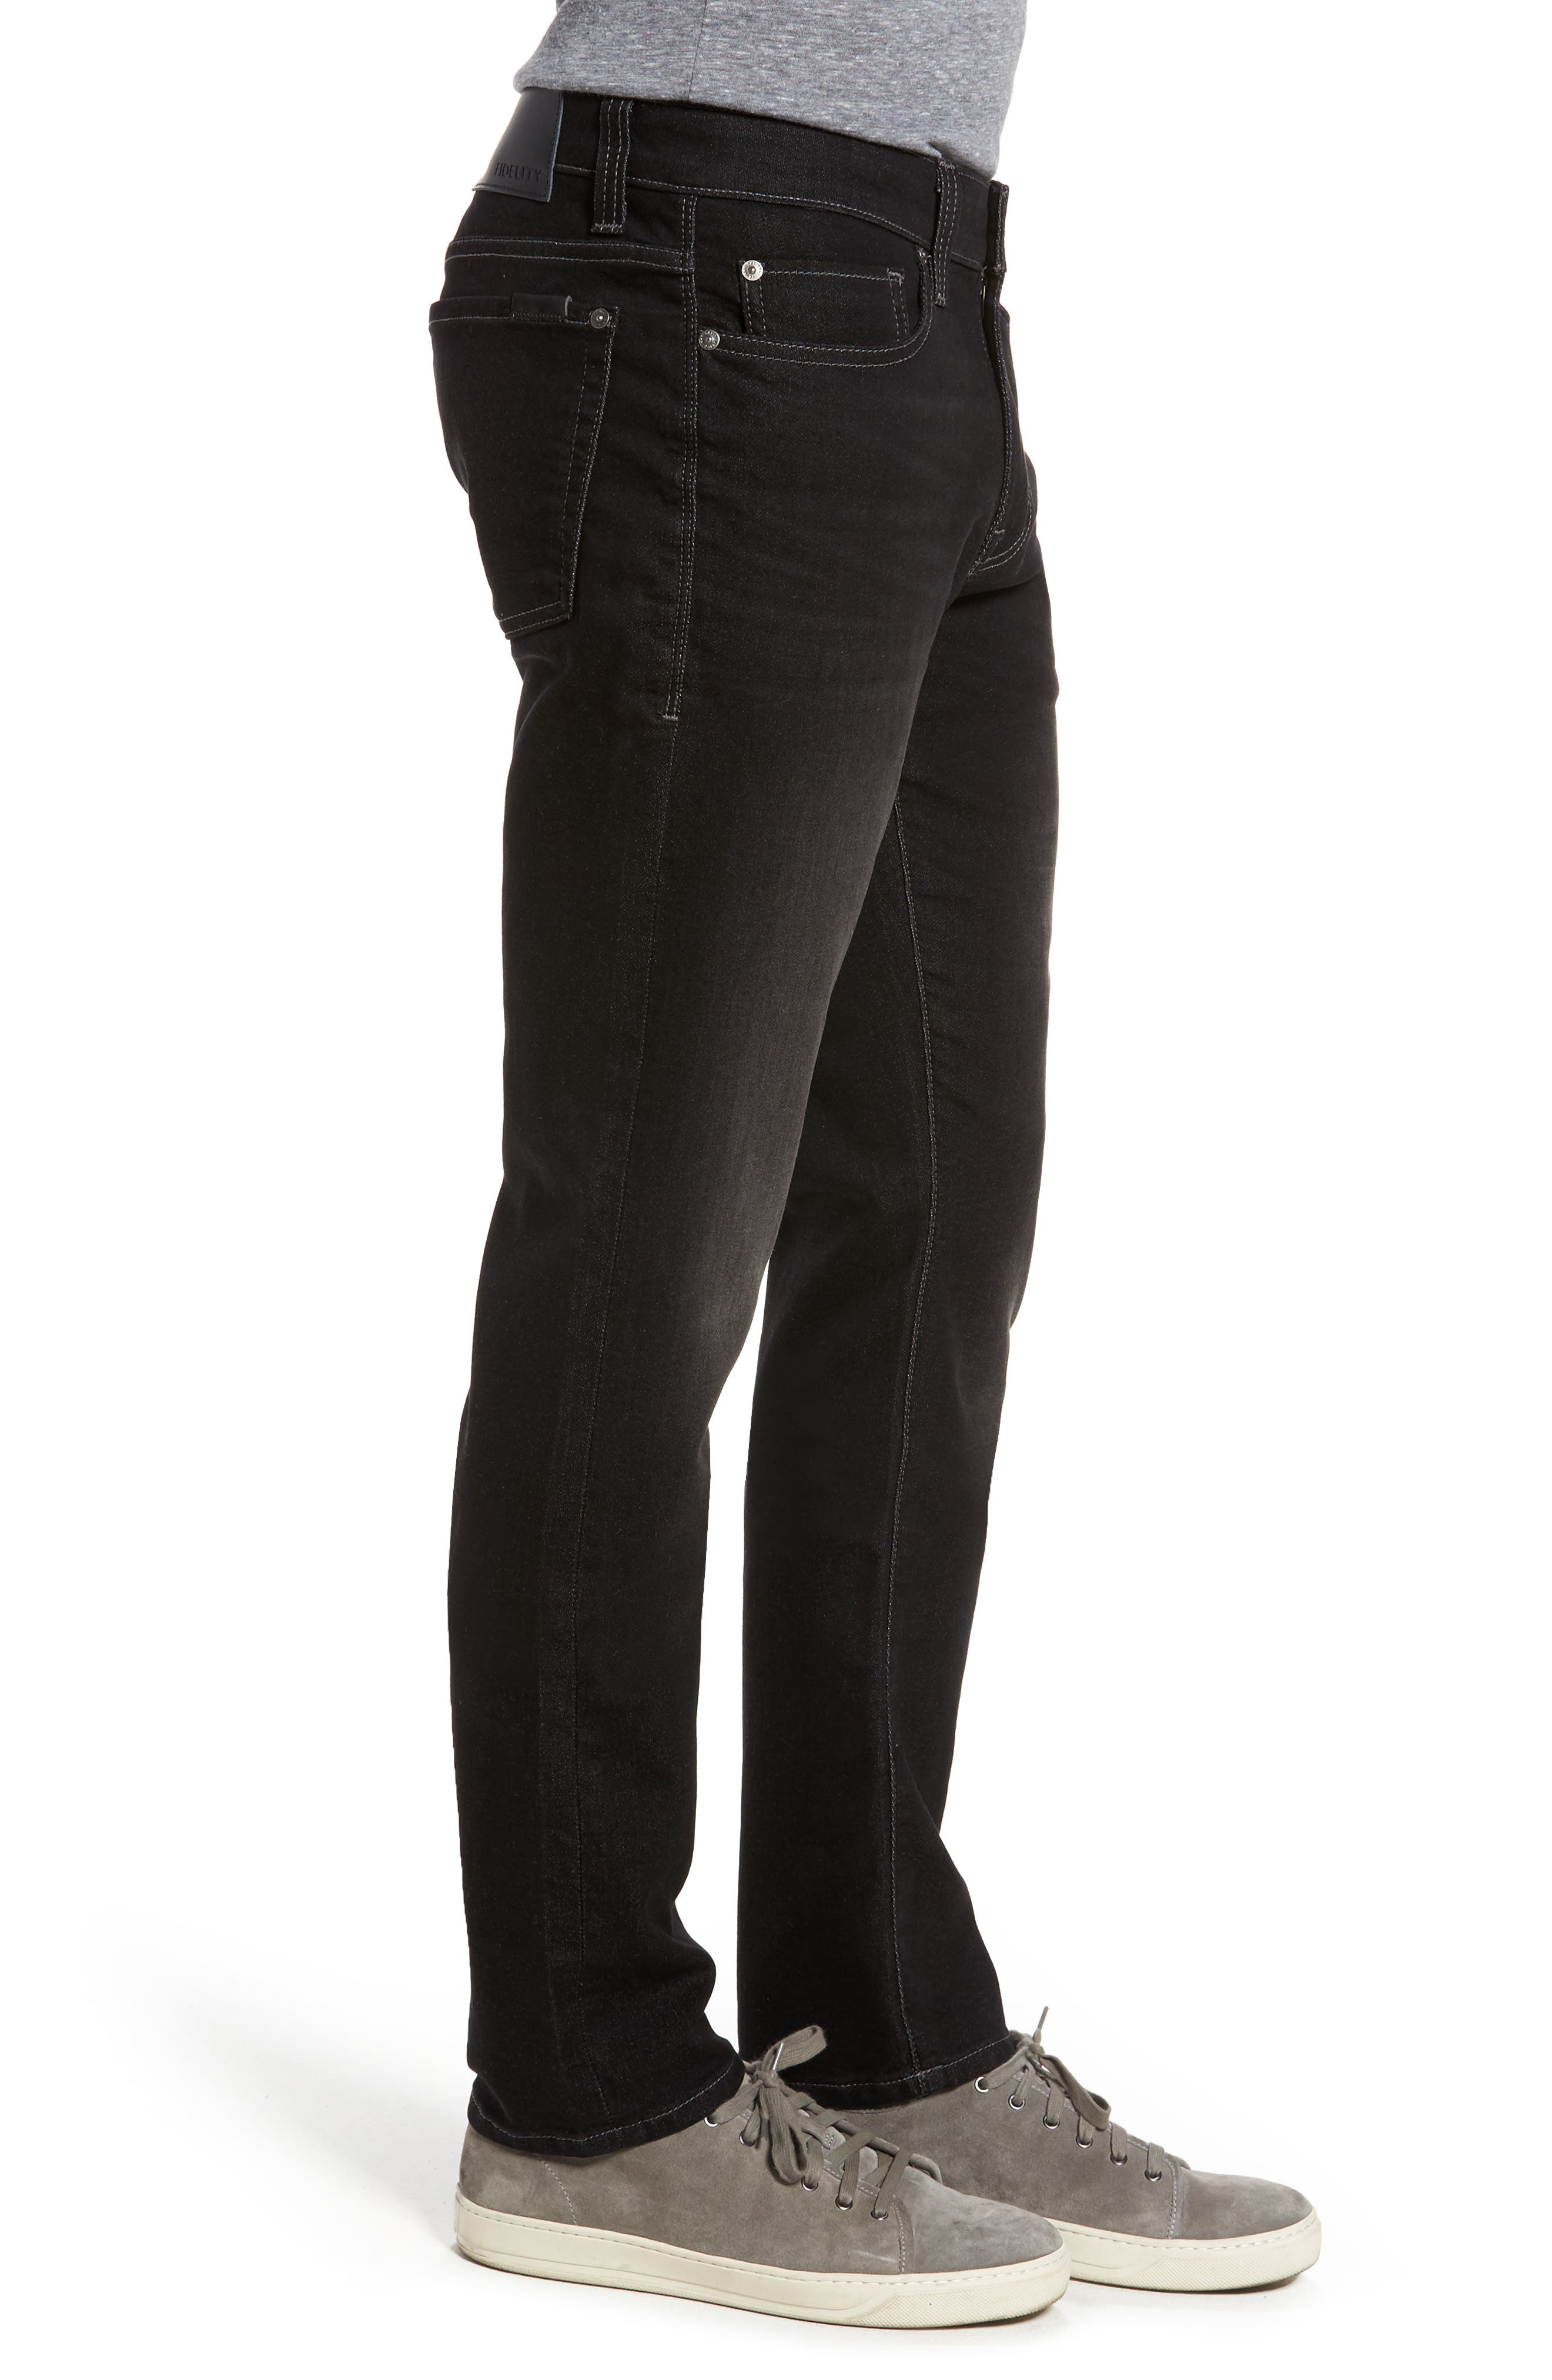 Torino Slim Fit Jeans,                             Alternate thumbnail 3, color,                             001